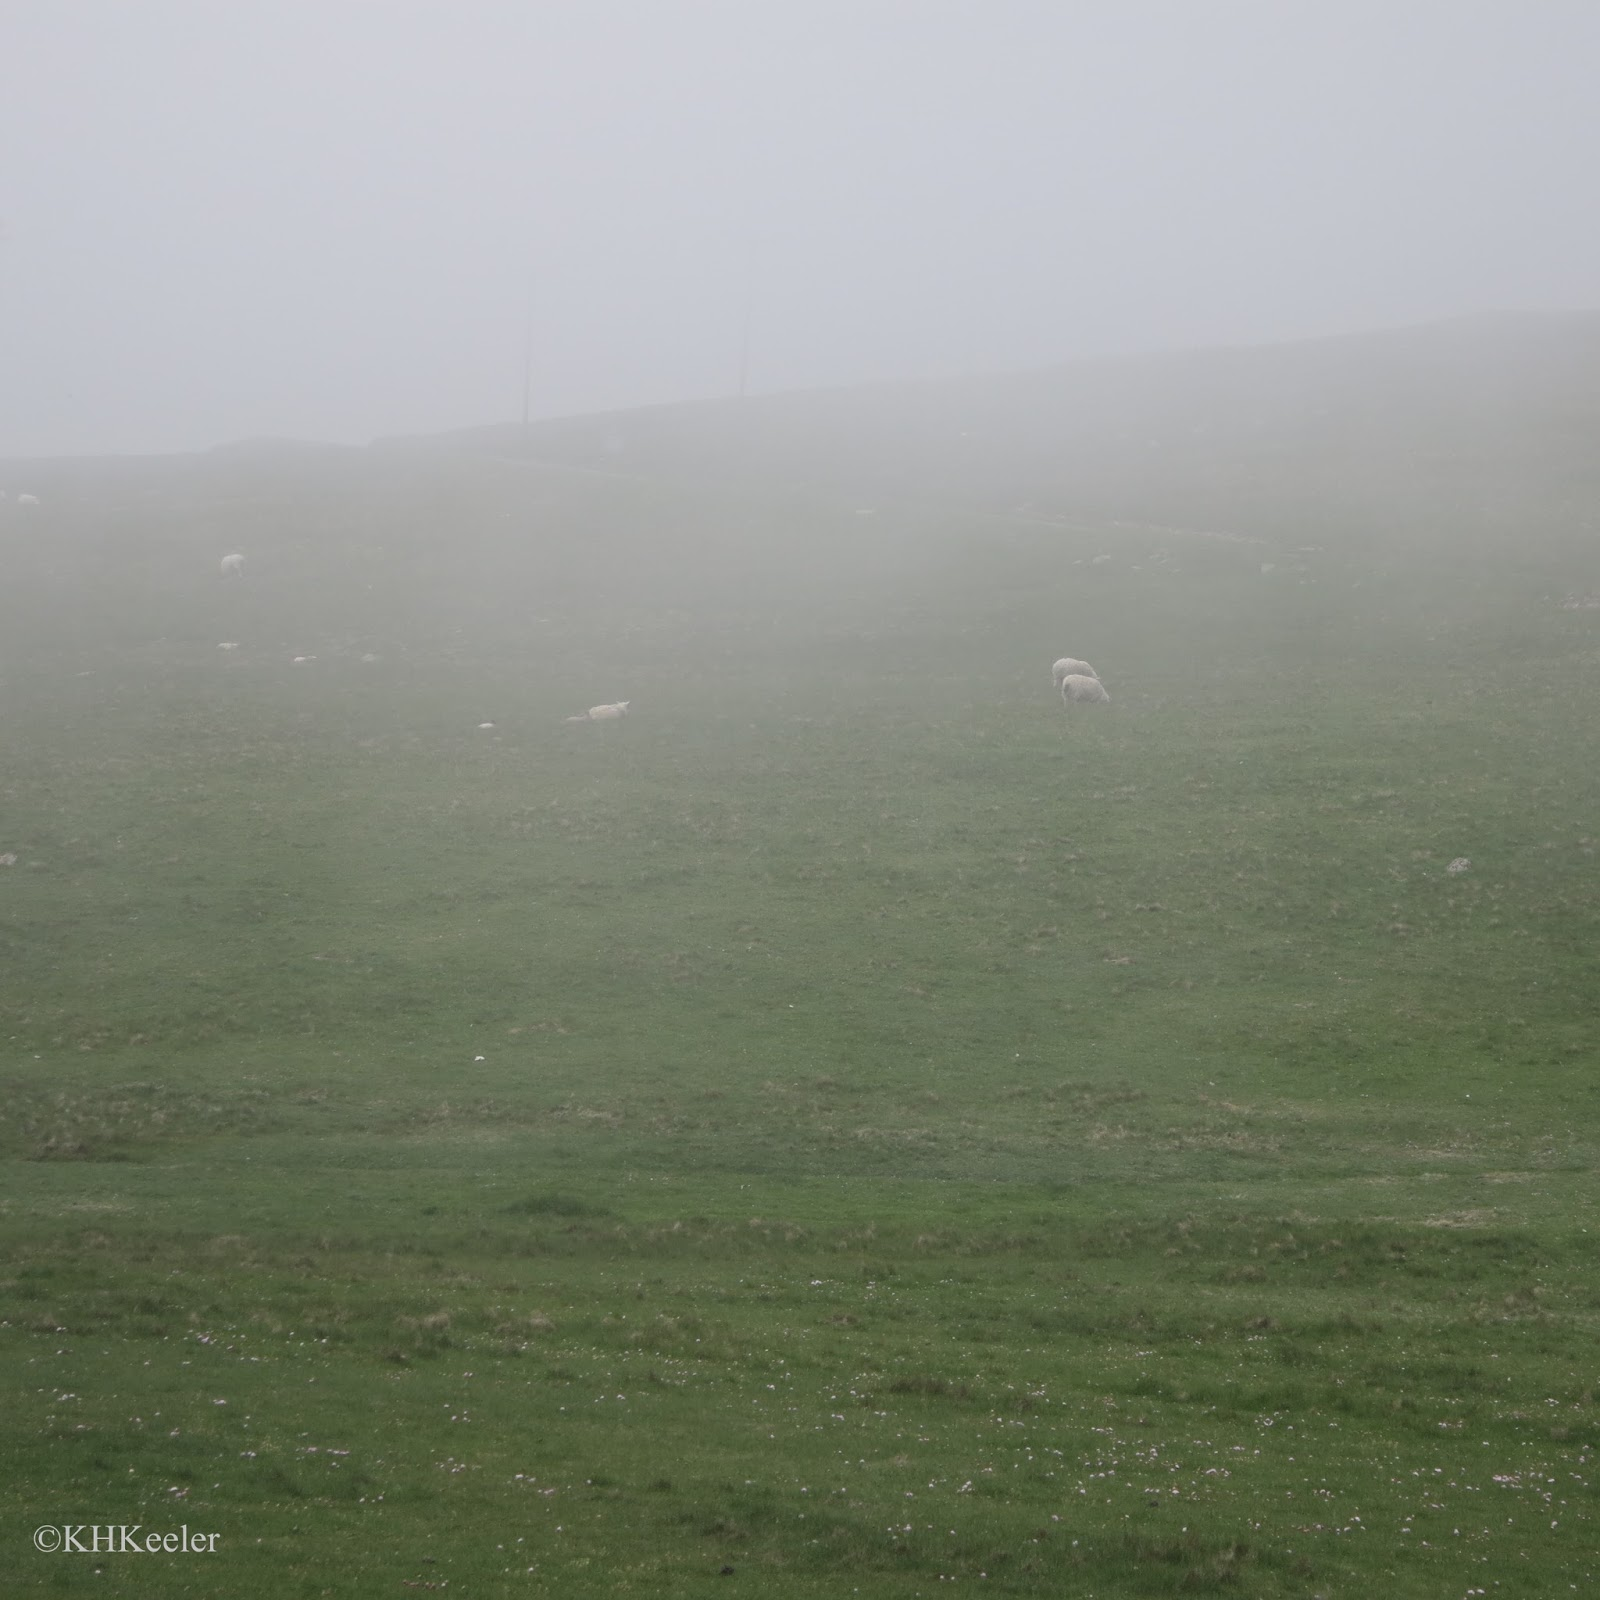 sheep in the mist, Shetland